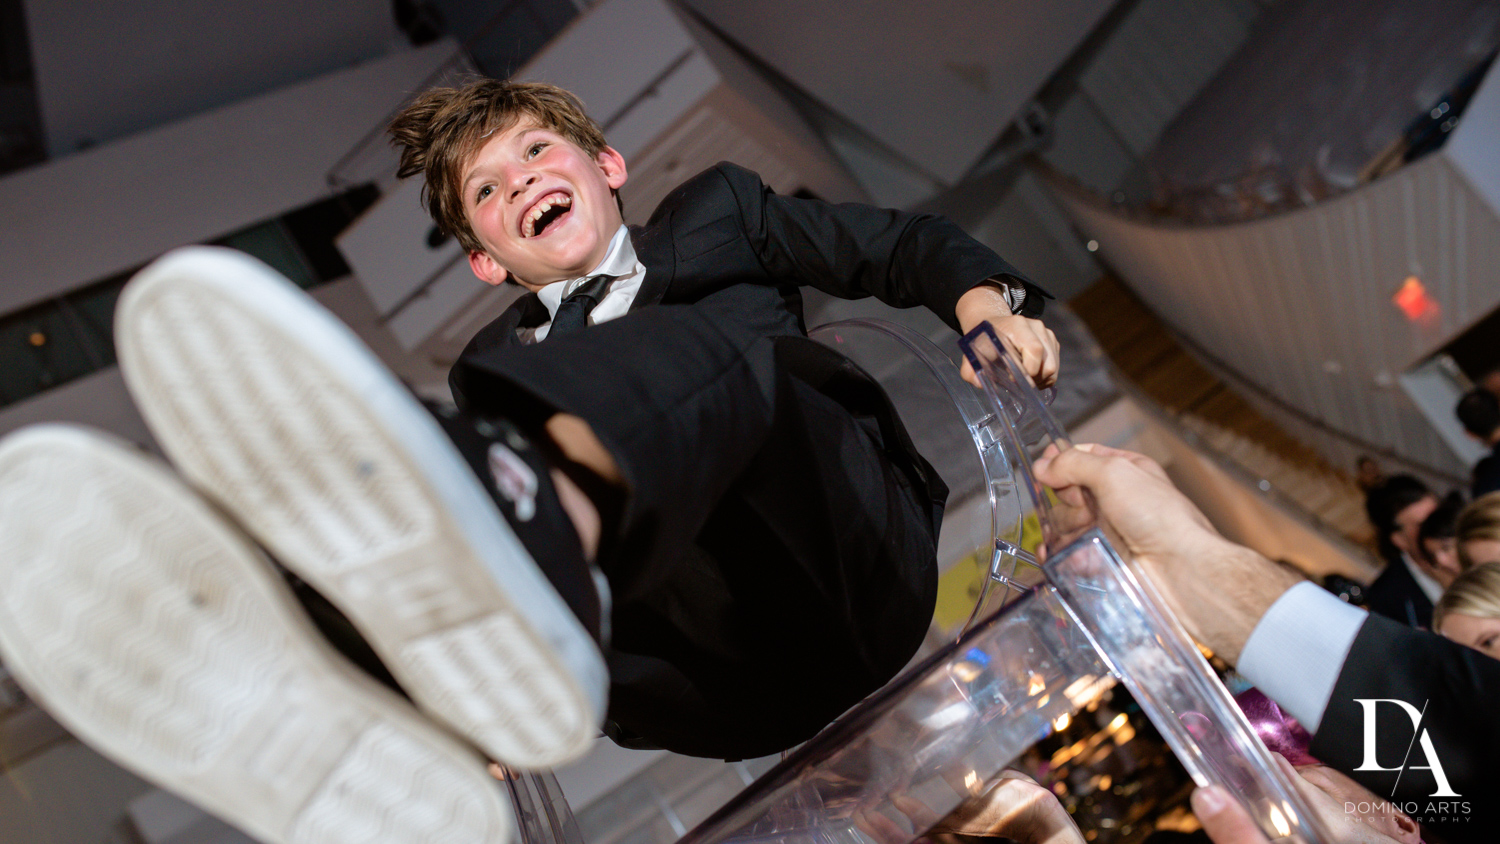 fun hora pictures at Luxurious Broadway Theme Bat Mitzvah at New World Symphony in Miami Beach by Domino Arts Photography